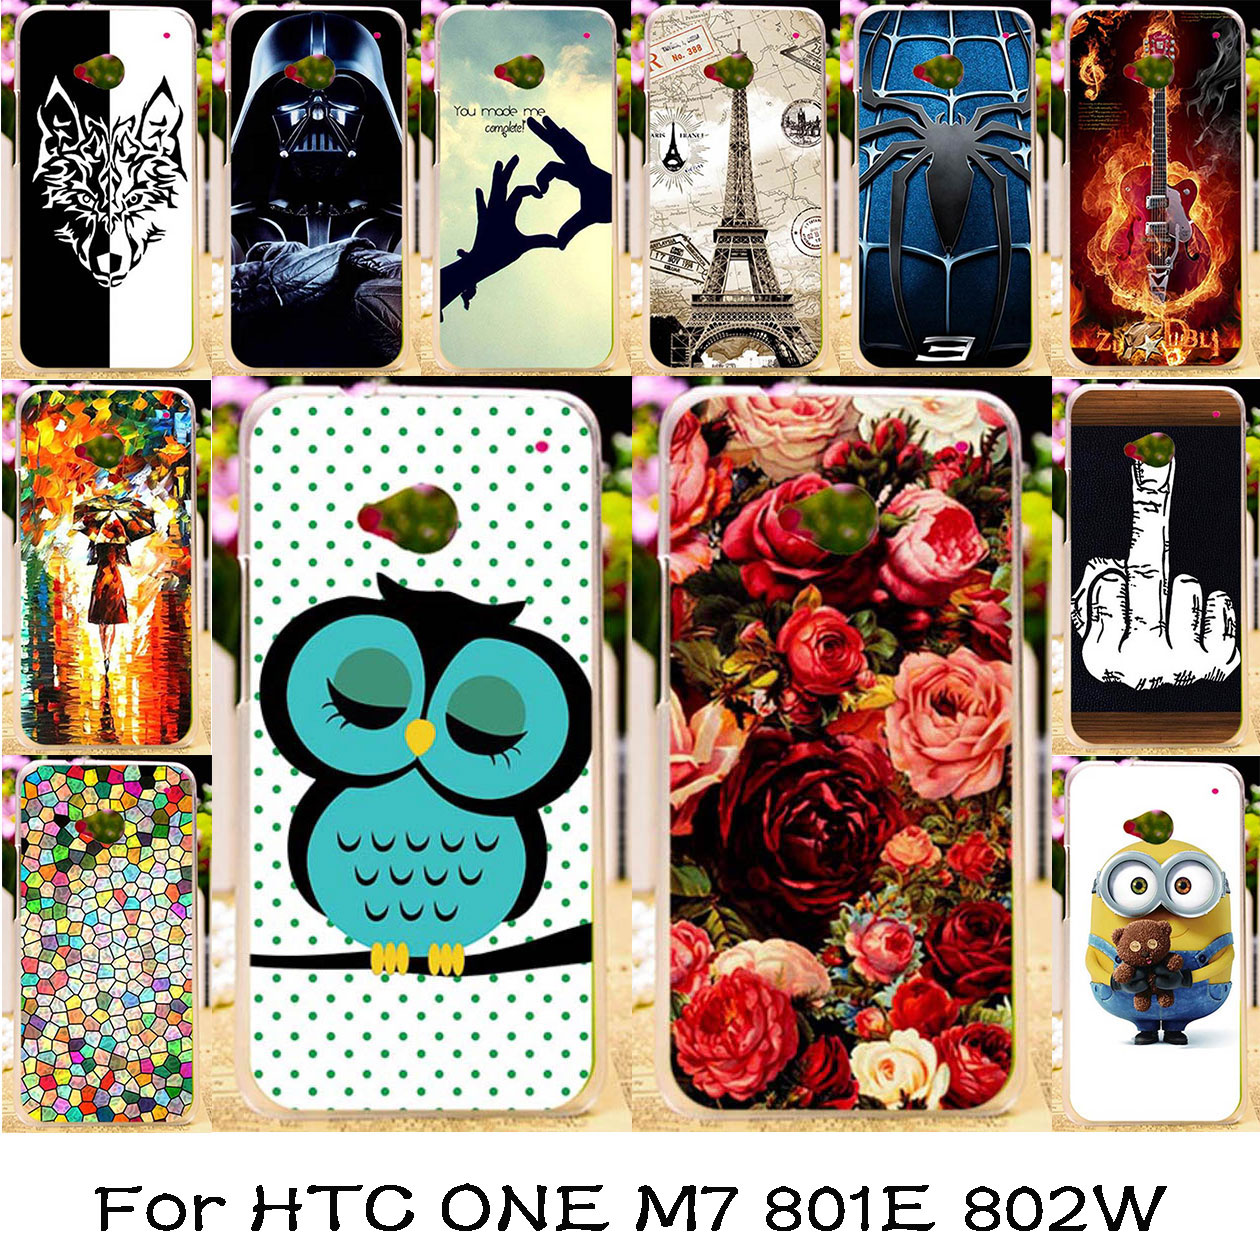 TAOYUNXI Silicone Phone Case For HTC ONE M7 802W Dual Sim 802D 802T 801E 801S Single Sim 801 Housing Bag Cover Shell Cover